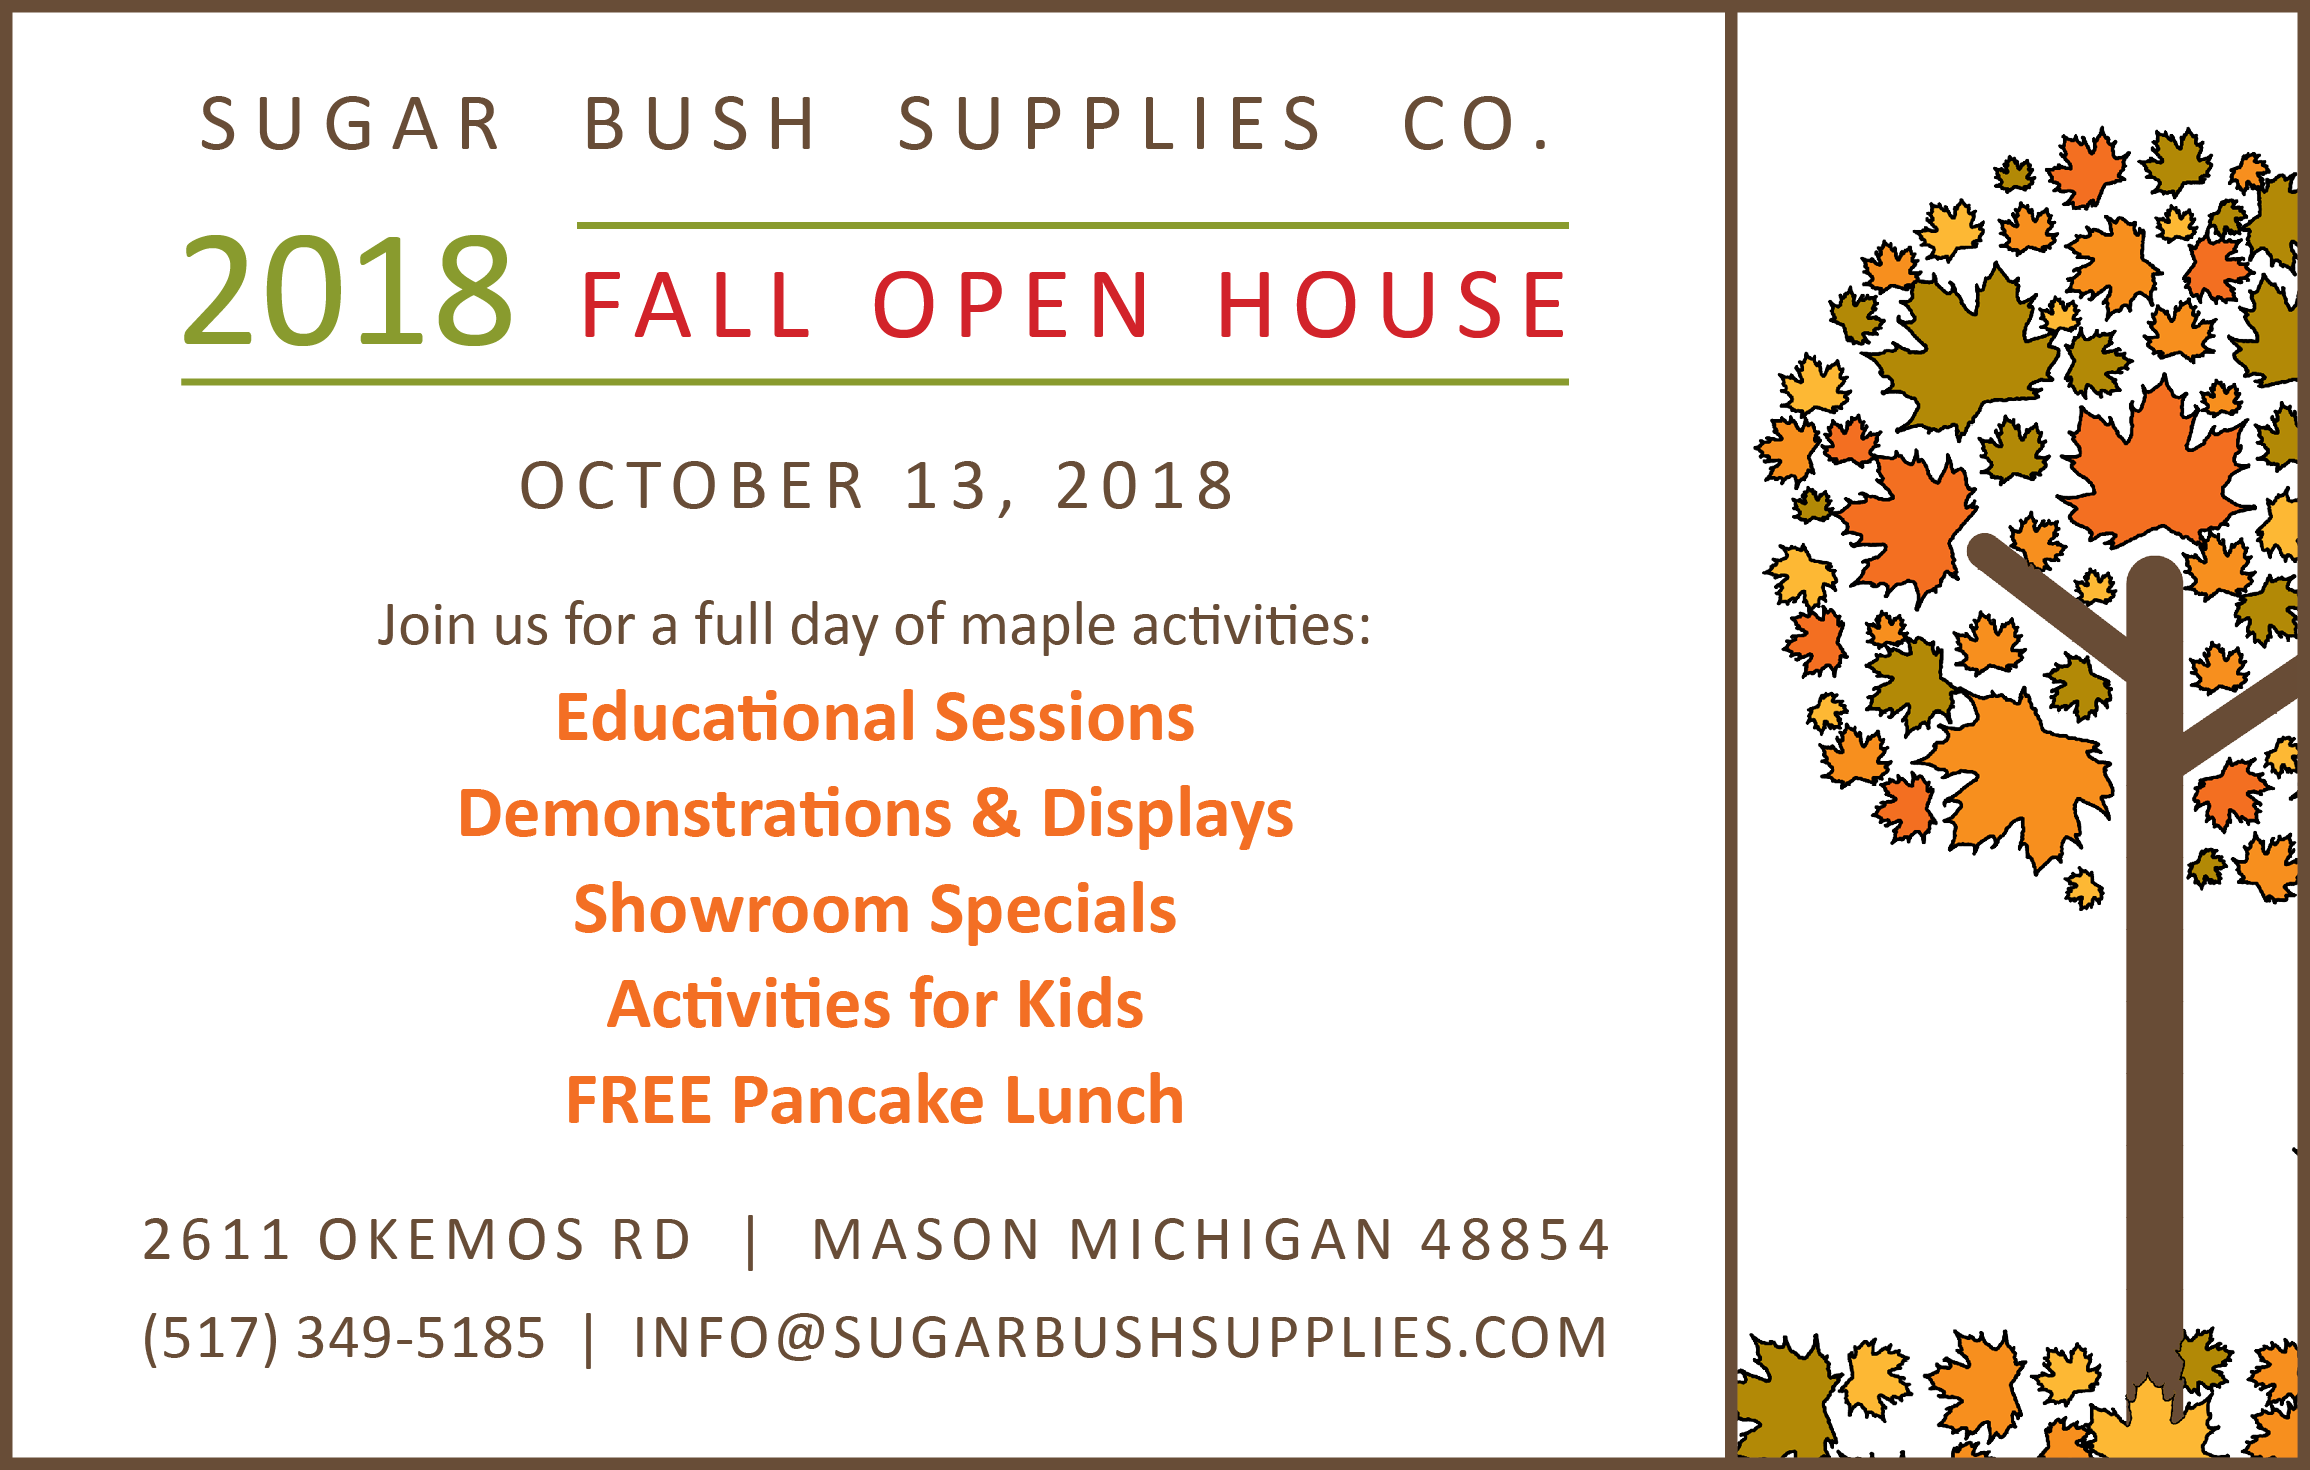 2018 Fall Open House, October 13 at Sugar Bush Supplies